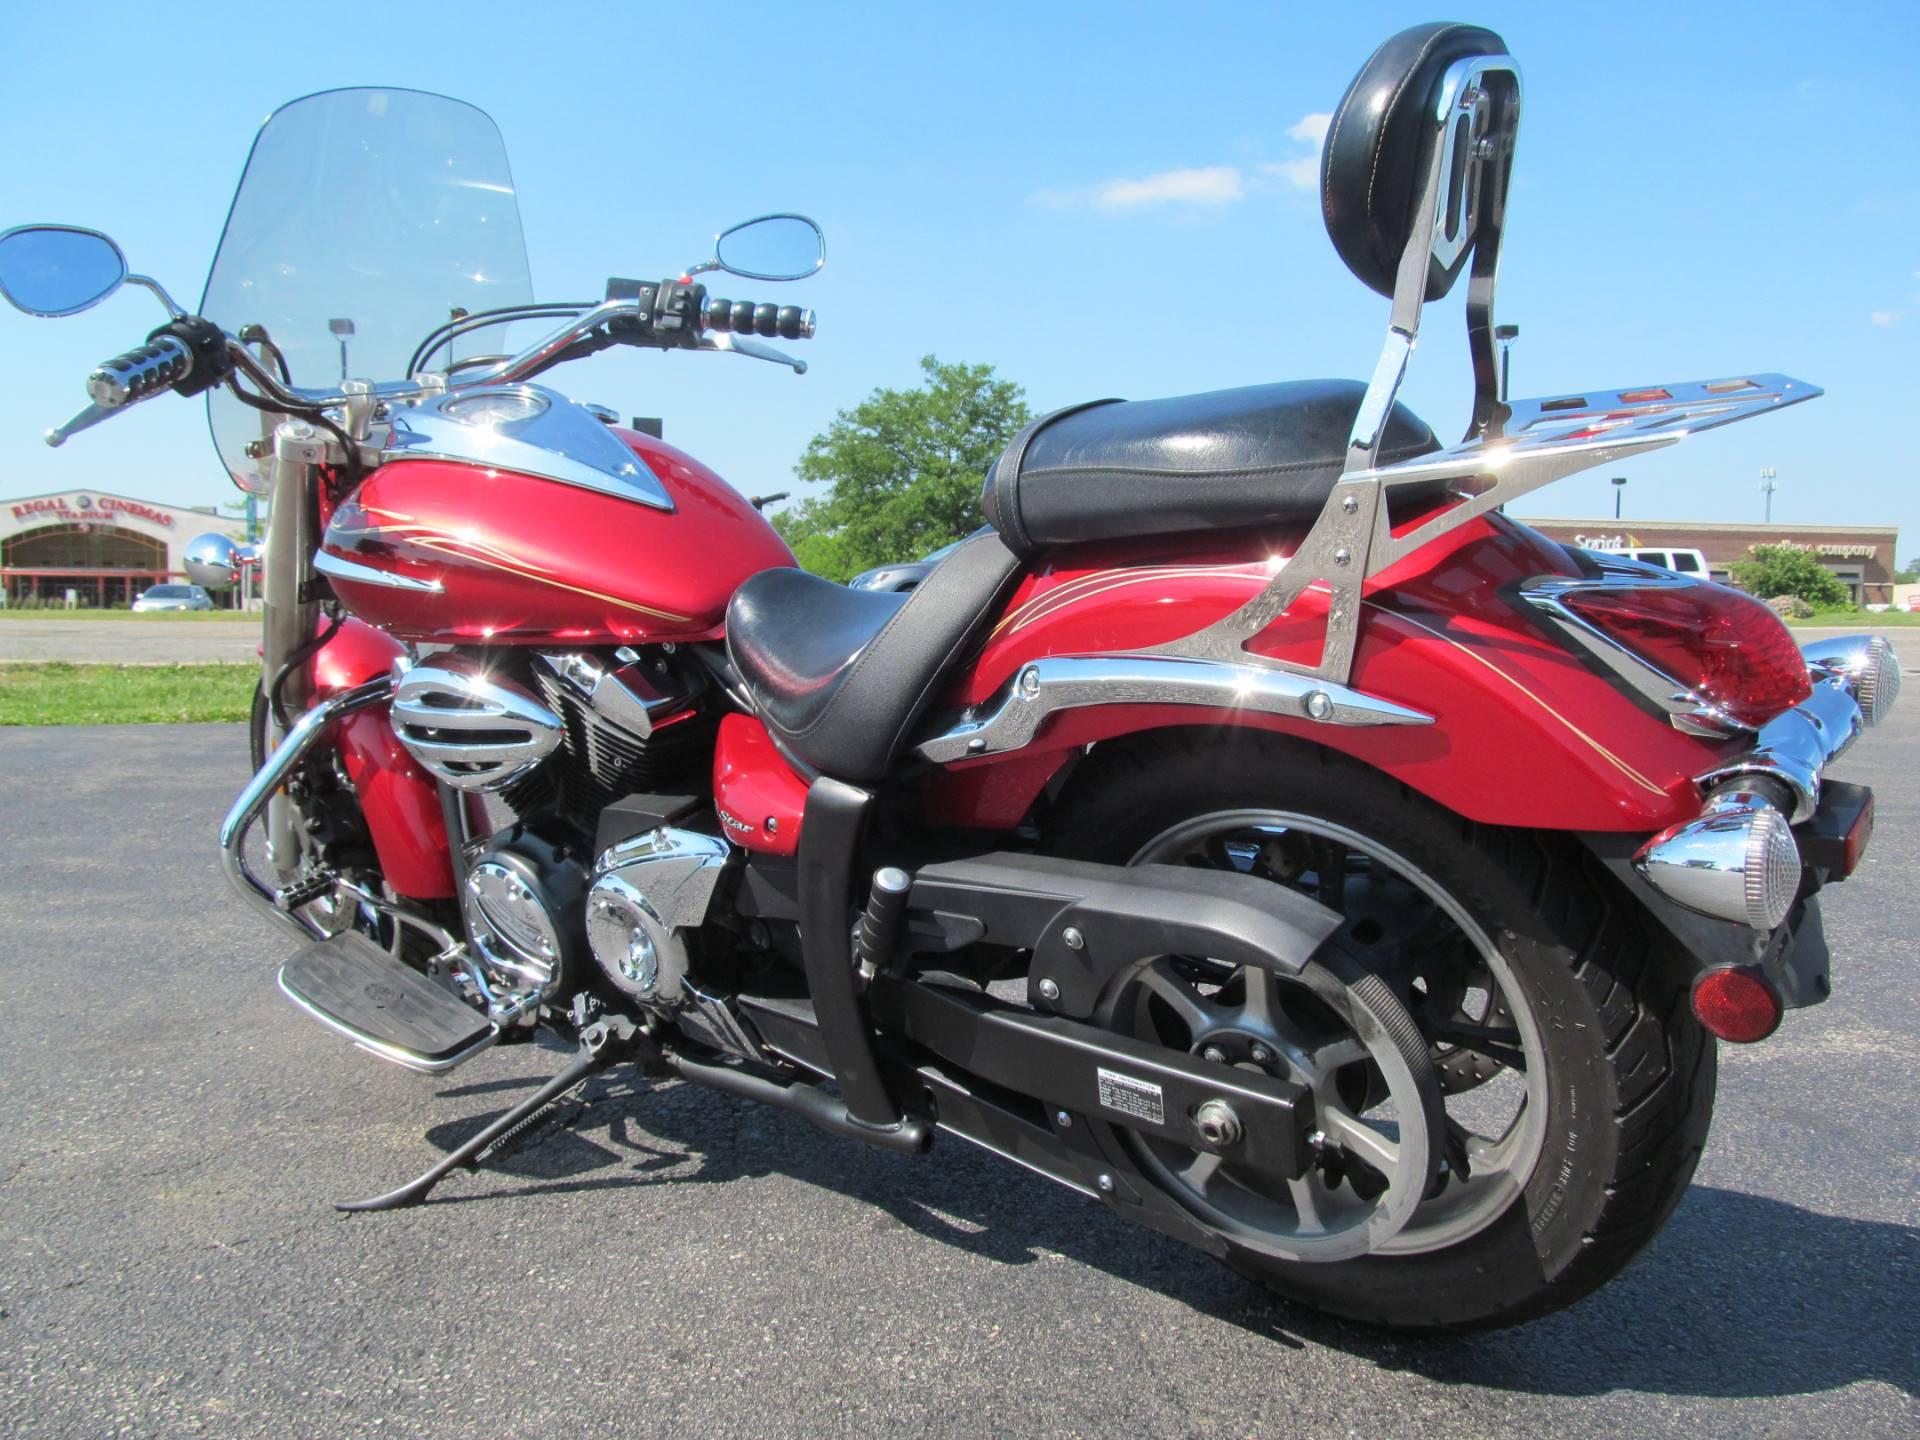 2009 Yamaha V Star 950 in Crystal Lake, Illinois - Photo 5